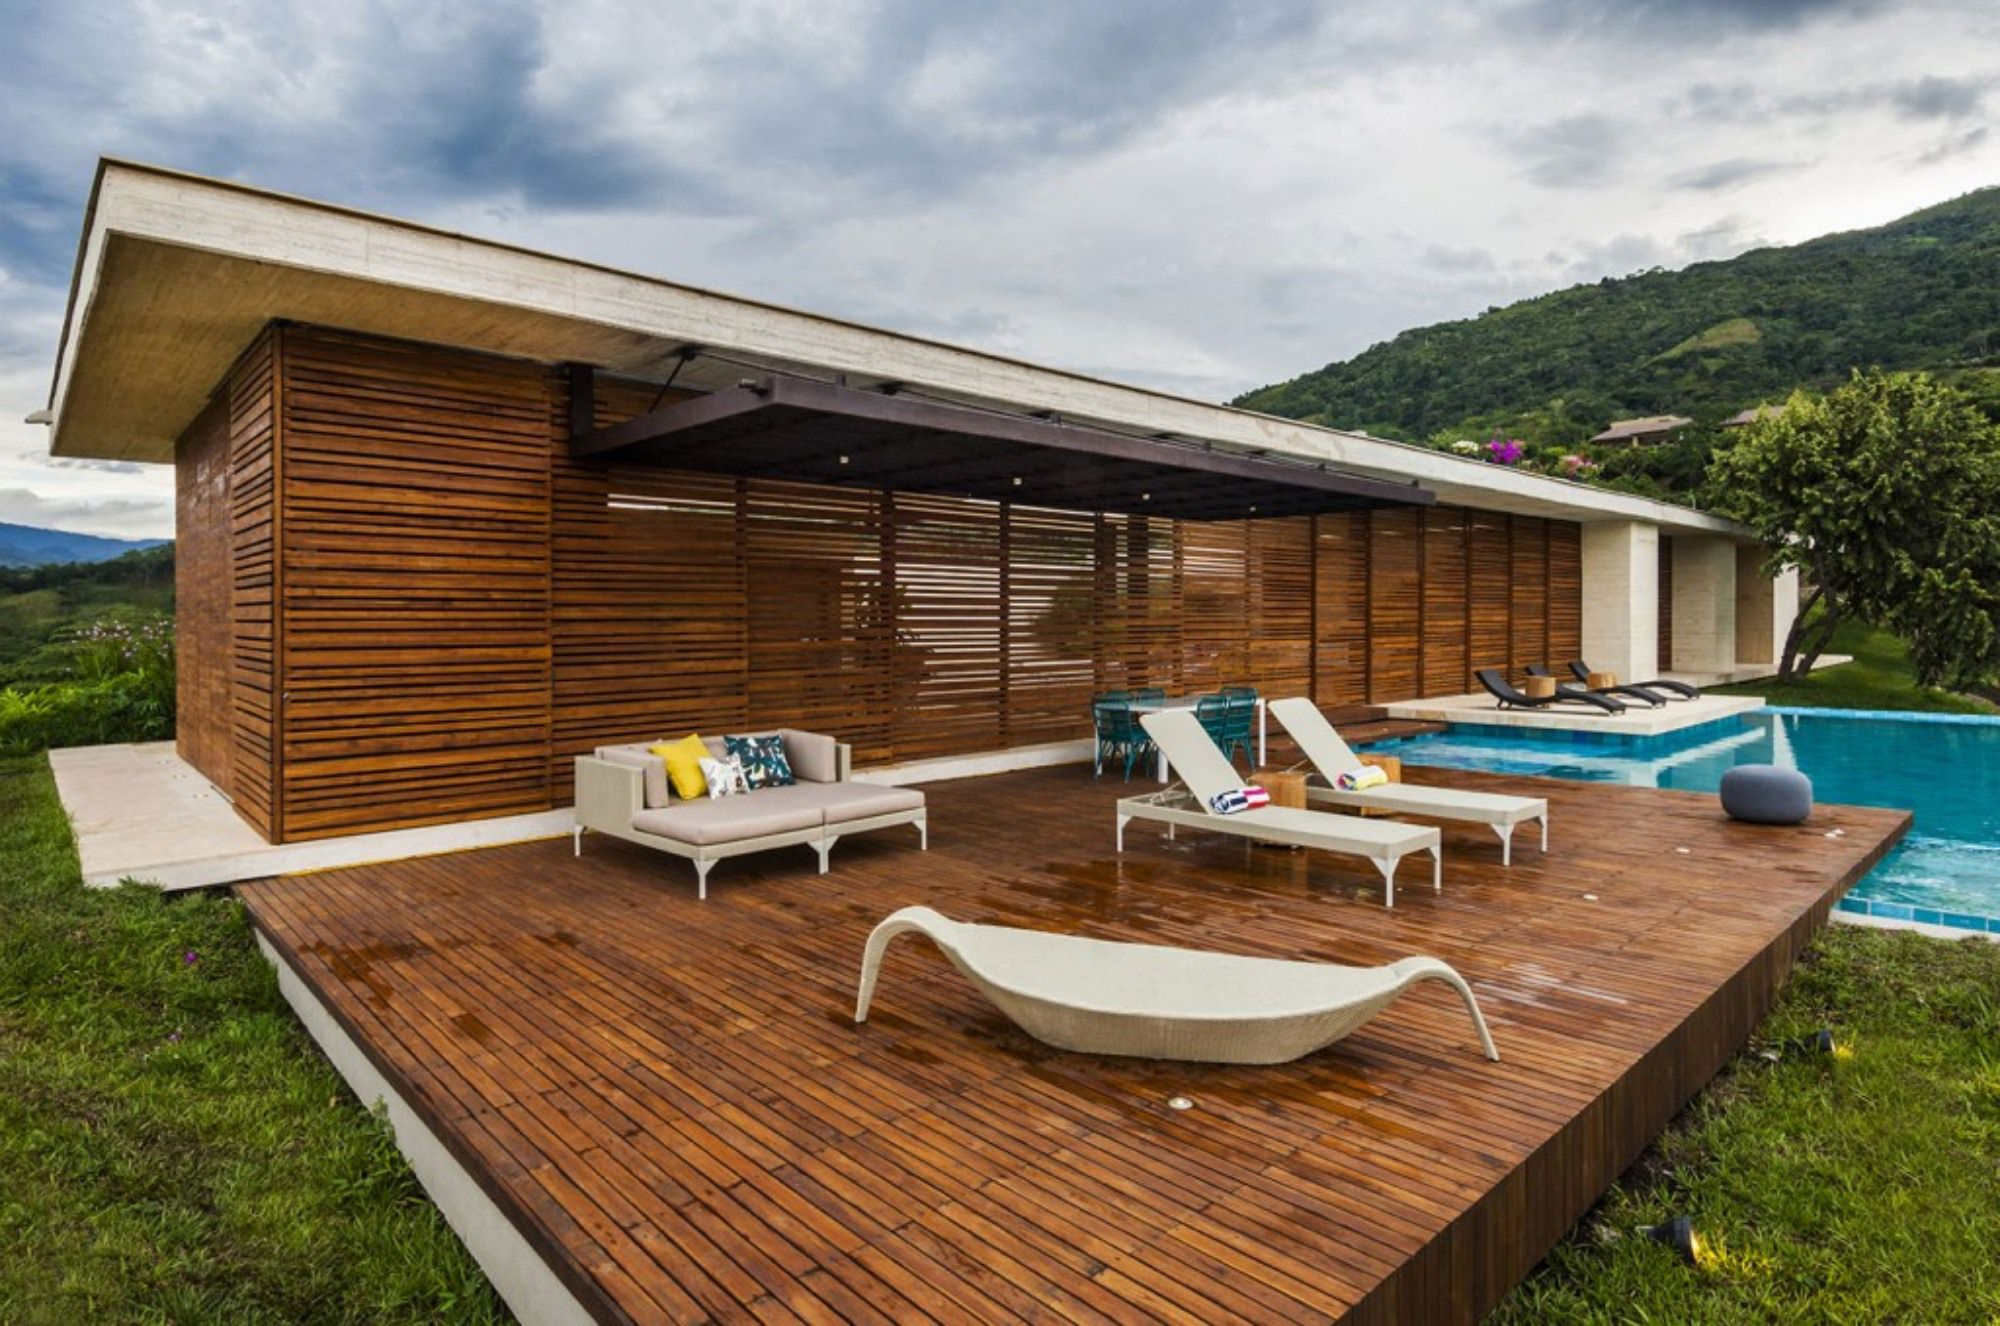 Gentil Contemporary Deck Design Idea In Simple Rectangular Shape With Chaises And  Sofa